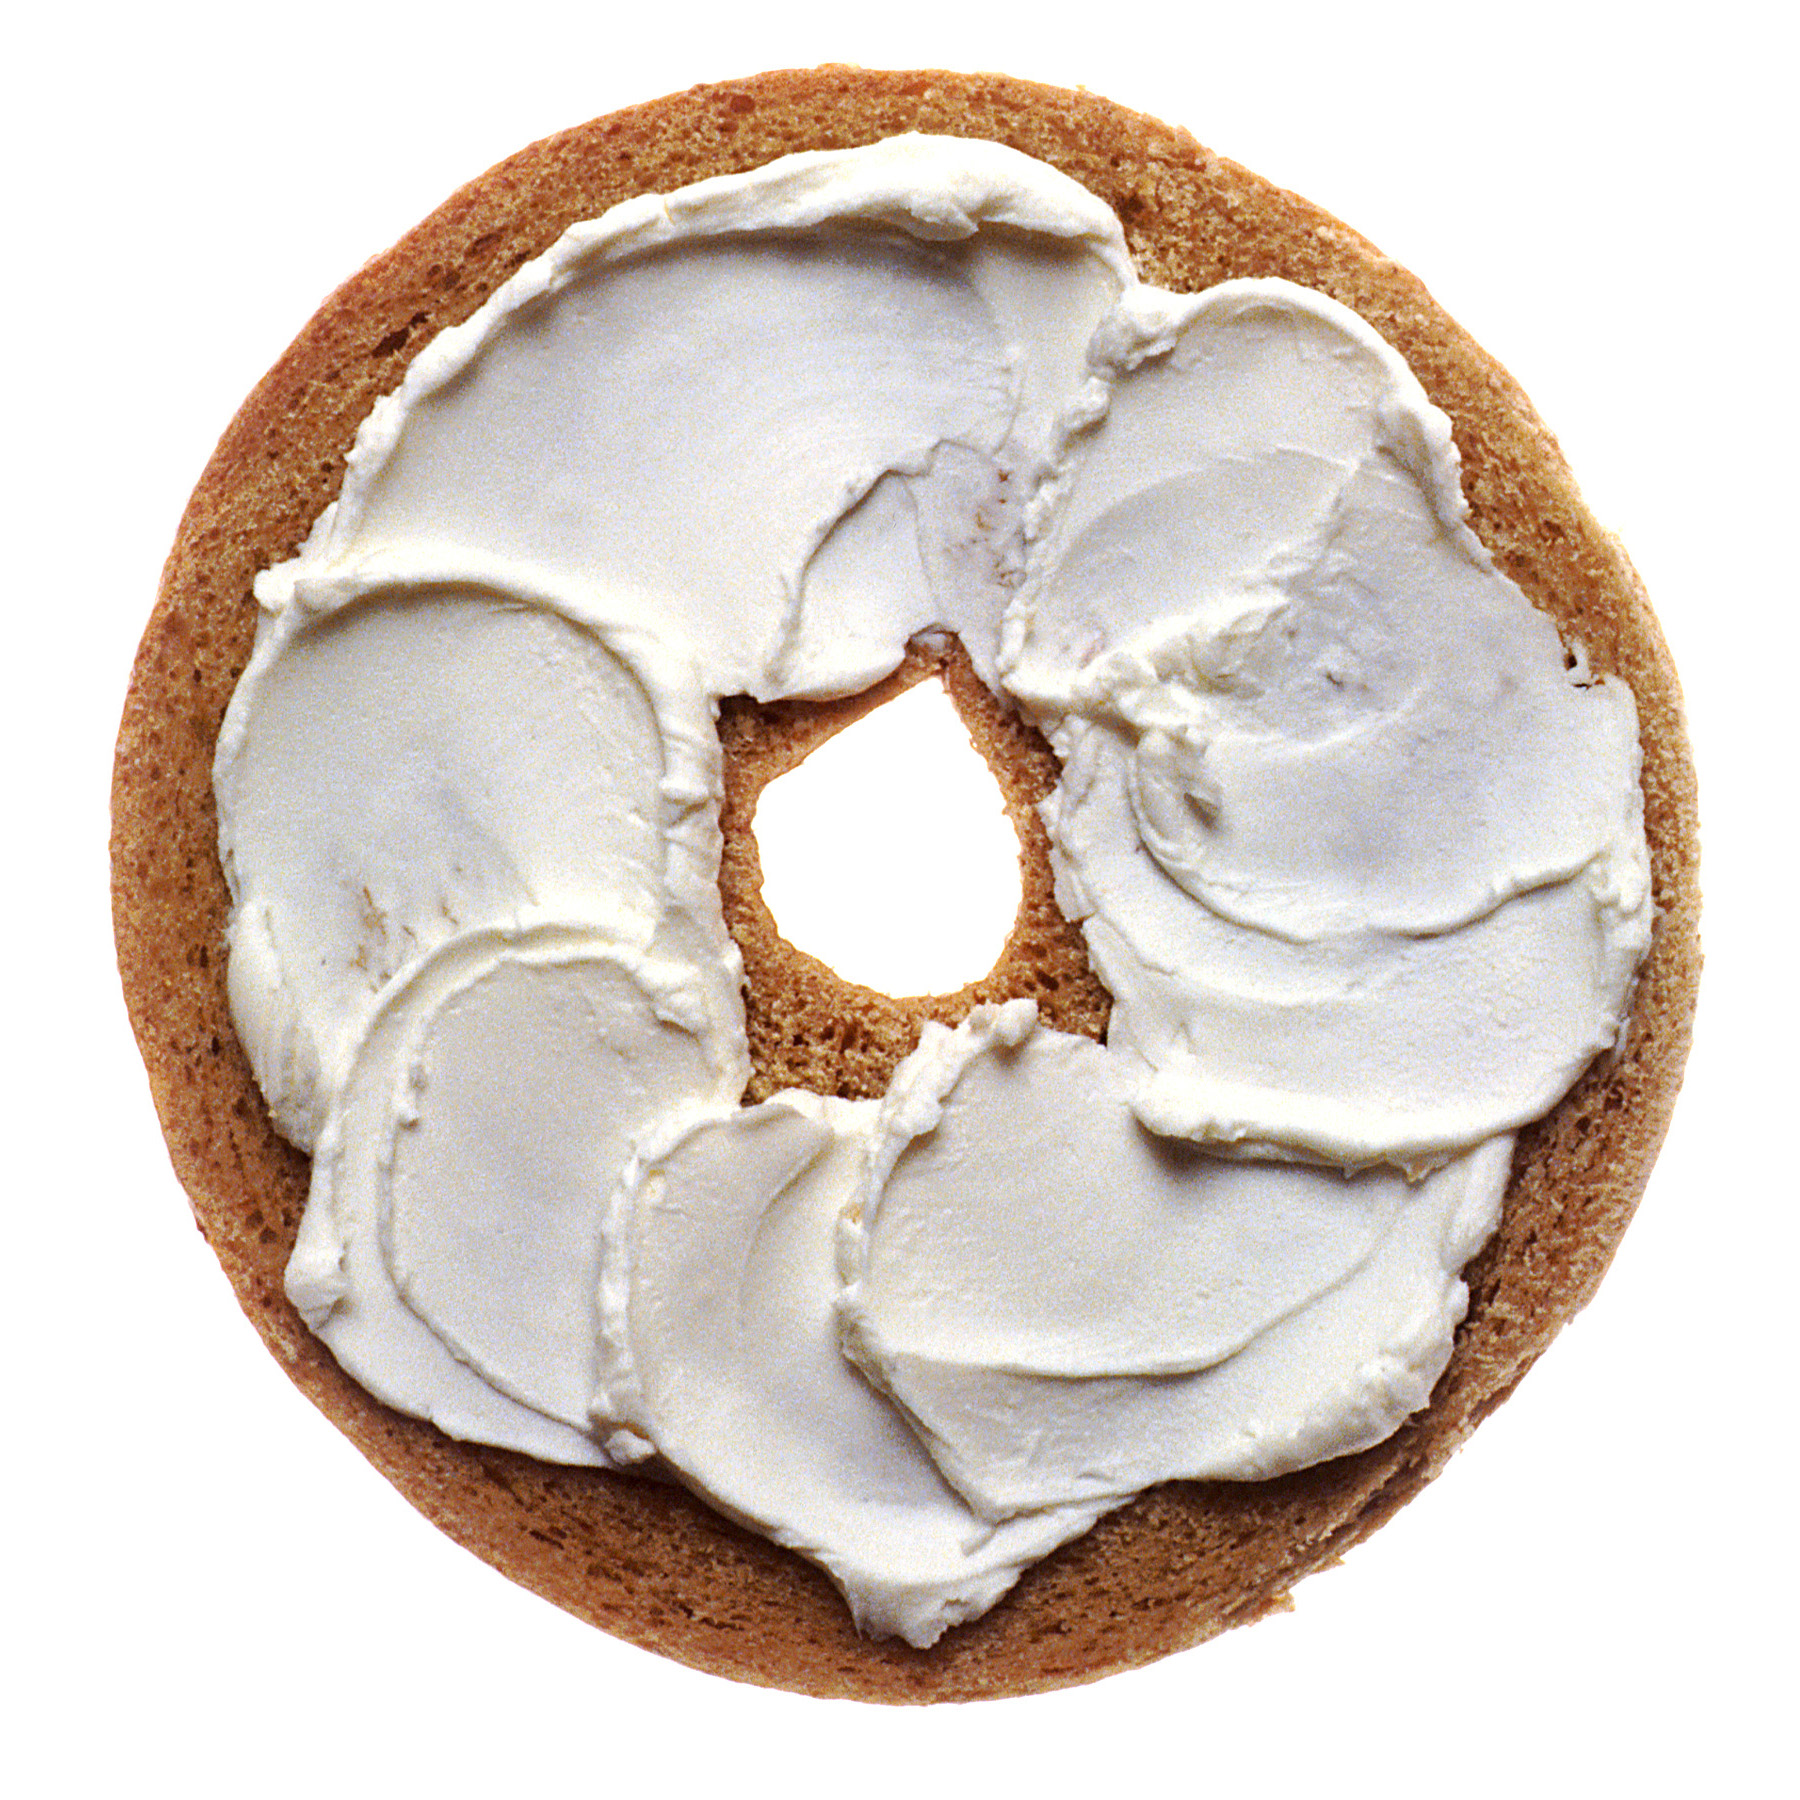 Bagel and cream cheese , Wikipedia